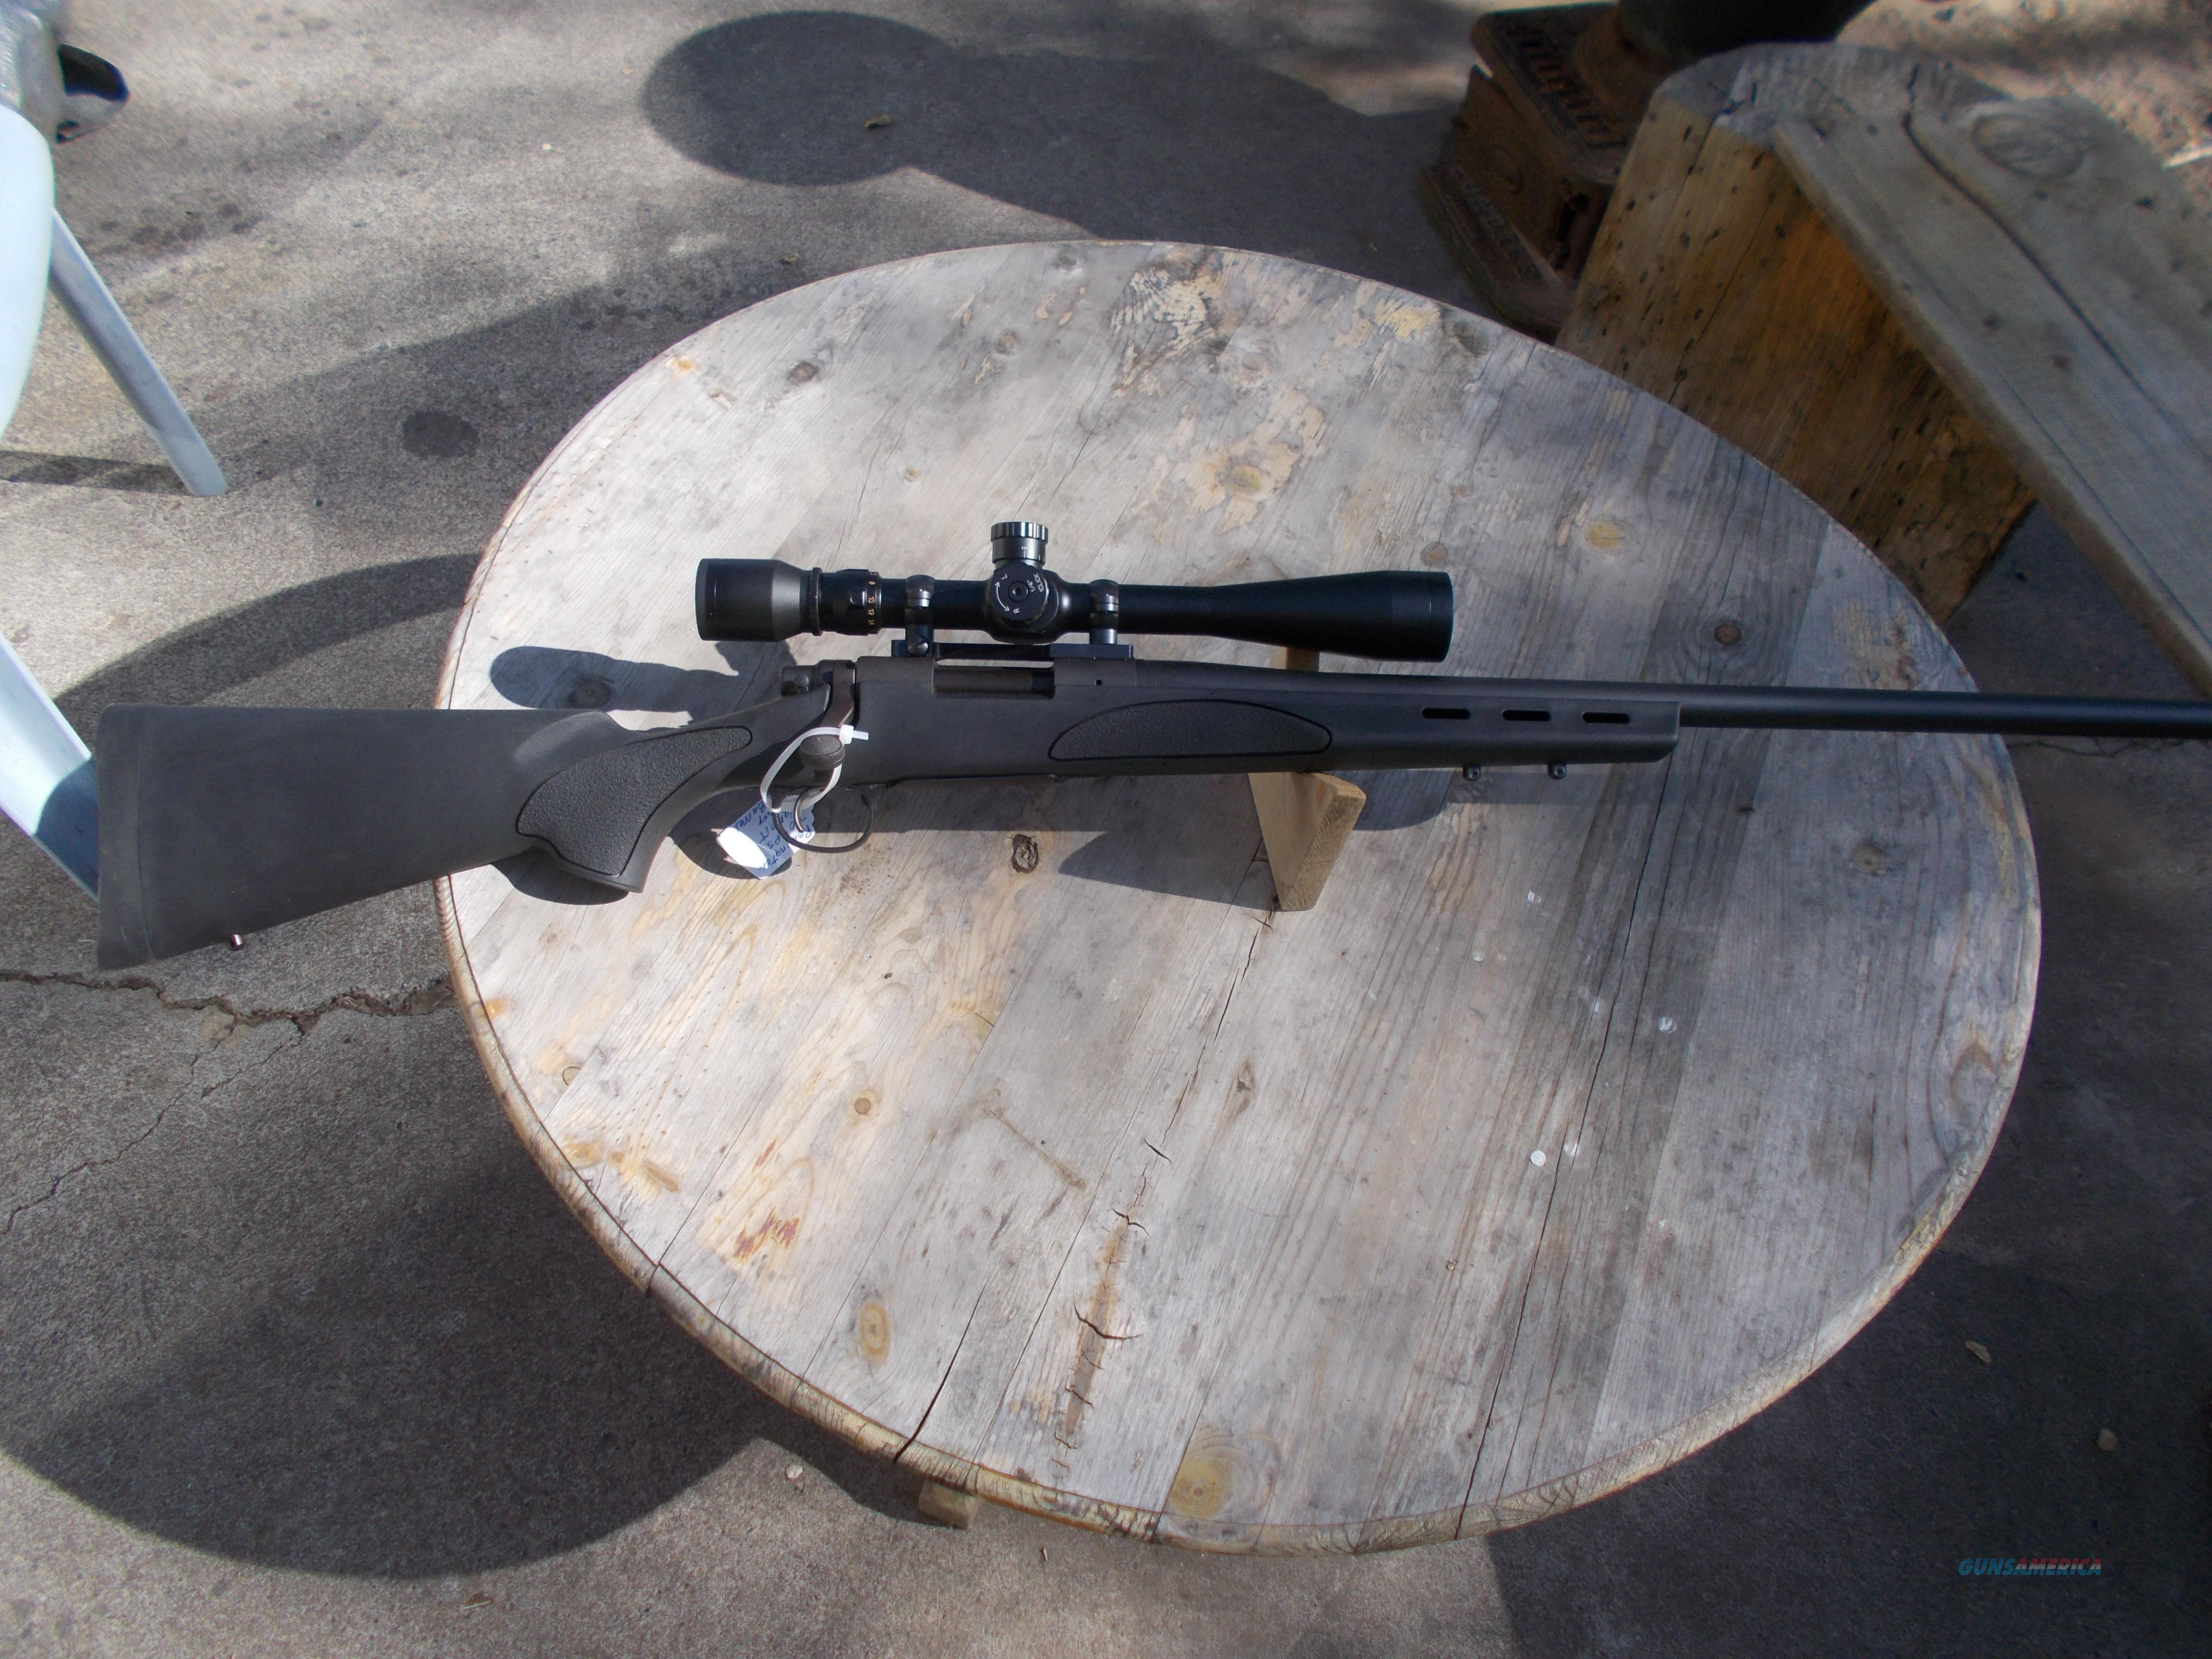 remington 700 sps 204 w/scope as new  Guns > Rifles > Remington Rifles - Modern > Model 700 > Sporting